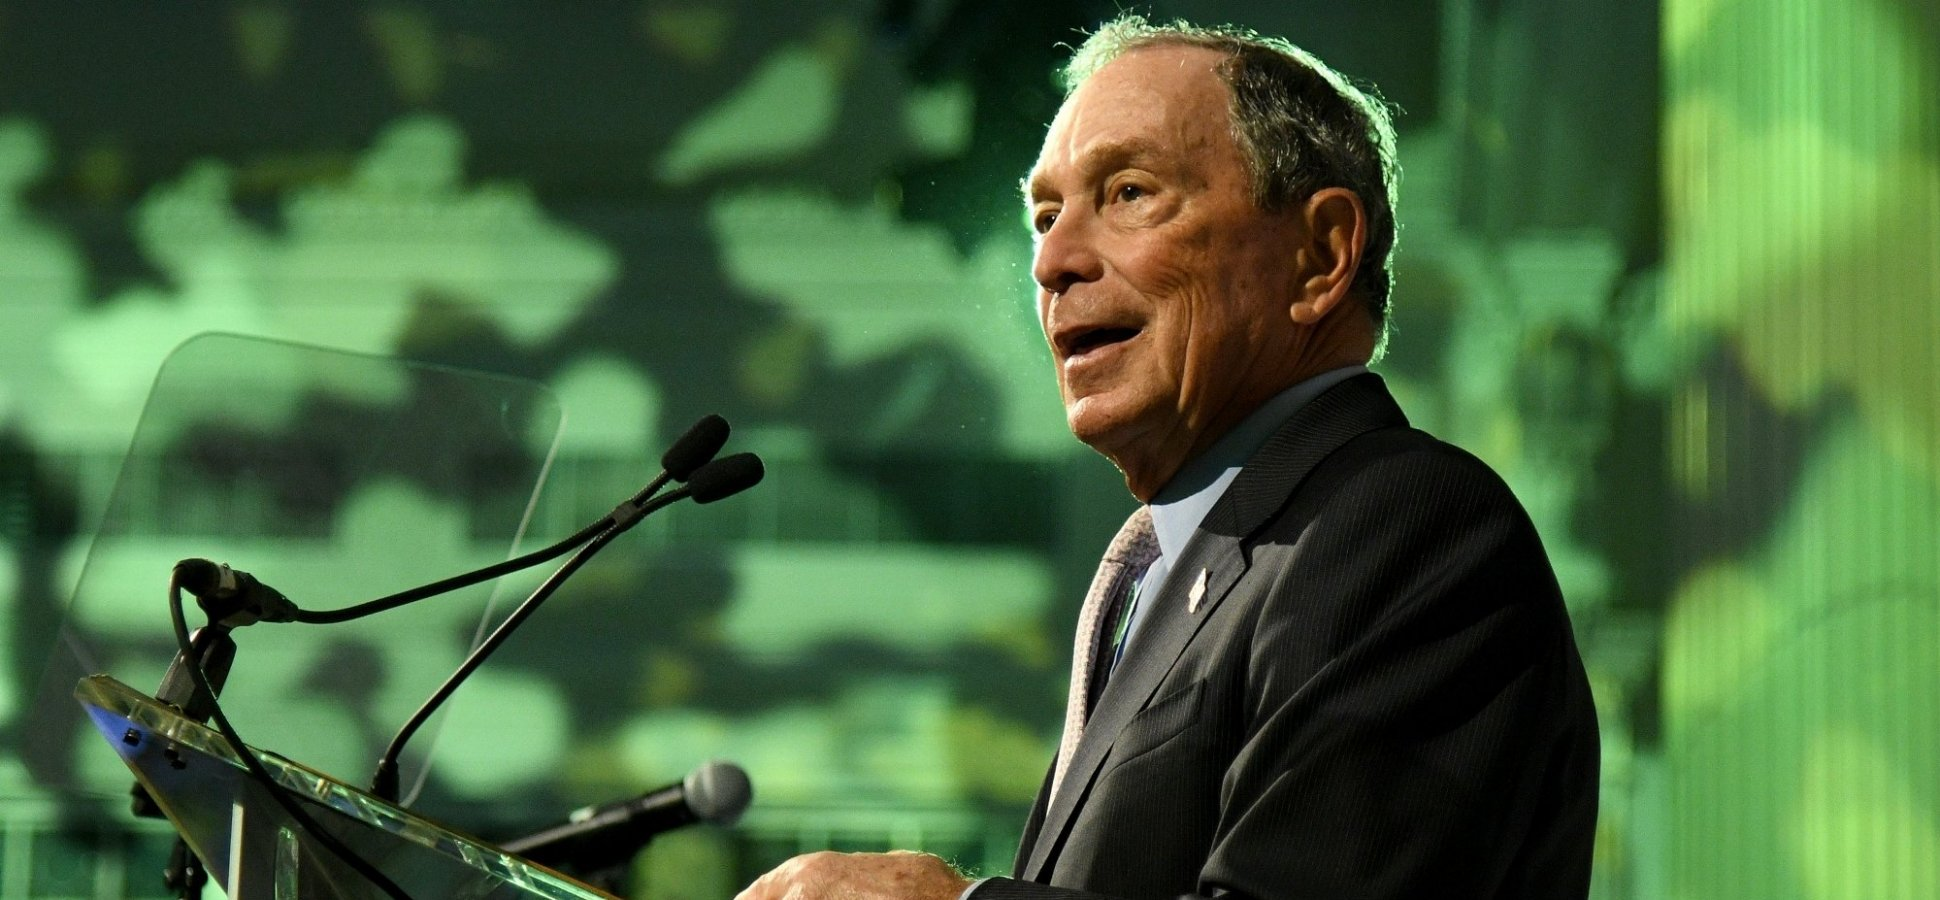 5 Personal Finance Tips From Billionaires Michael Bloomberg, Warren Buffet and Ray Dalio